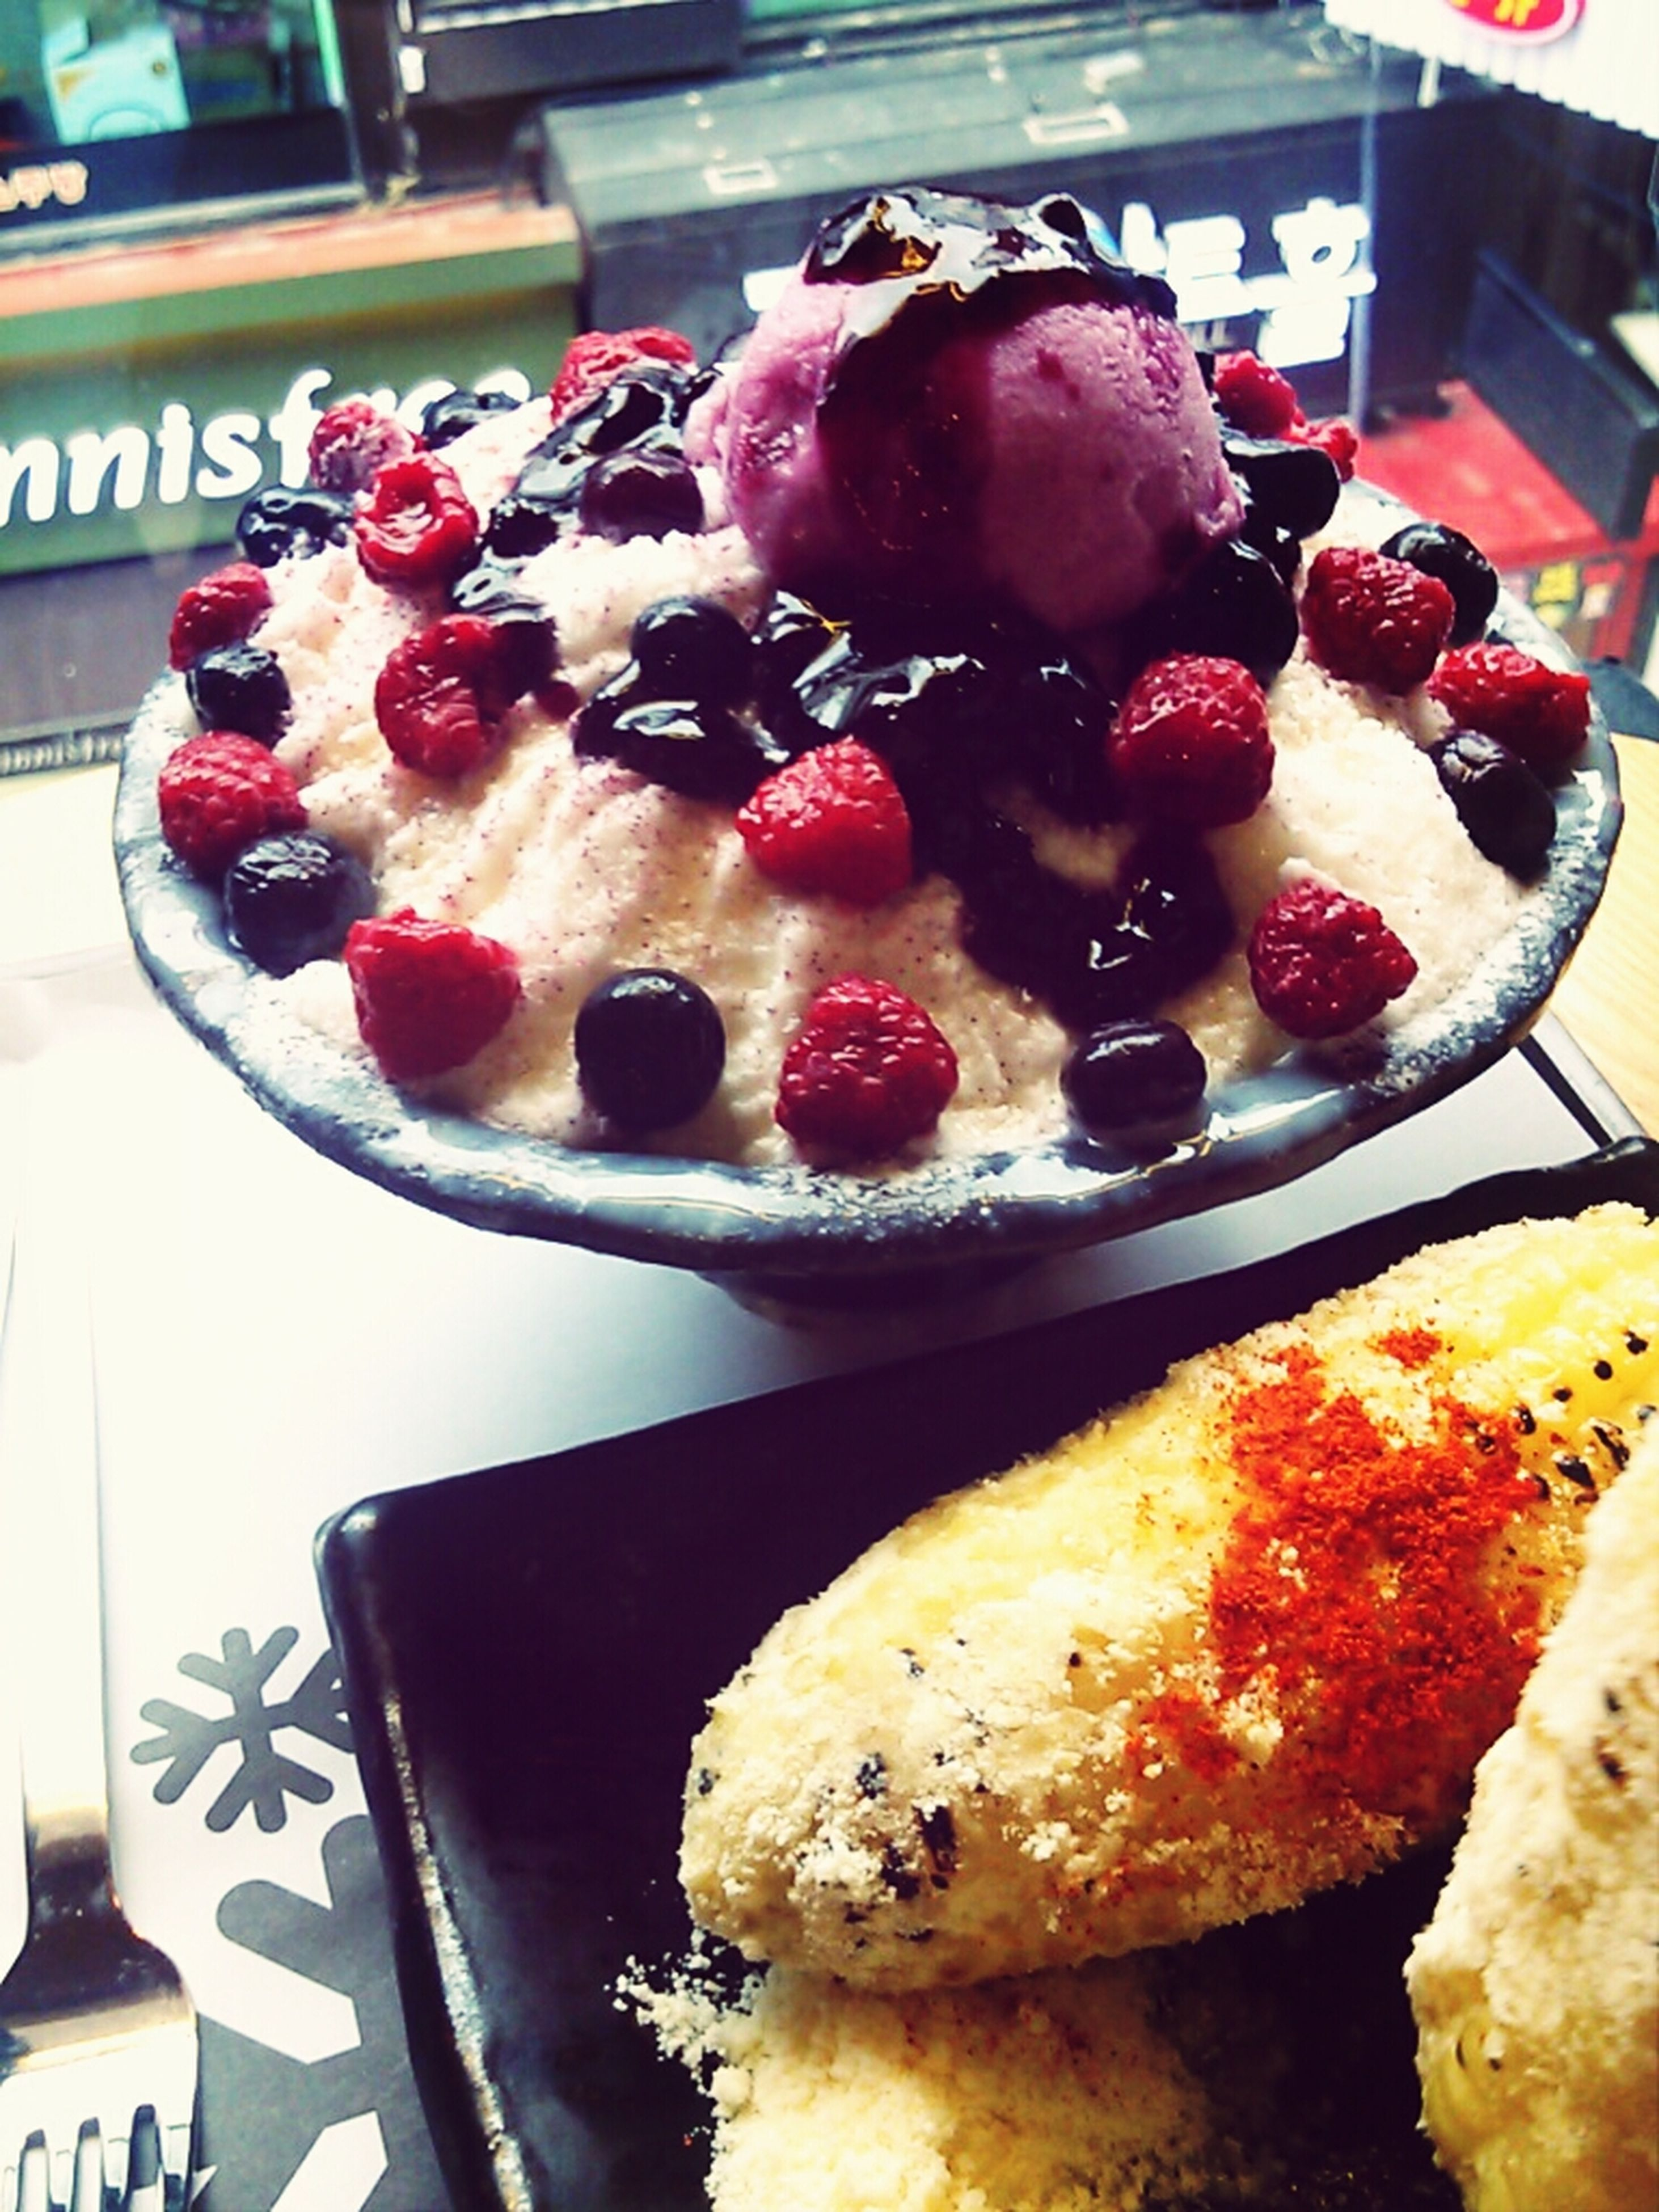 food and drink, food, freshness, sweet food, indoors, dessert, ready-to-eat, fruit, strawberry, indulgence, unhealthy eating, still life, cake, plate, temptation, raspberry, table, close-up, breakfast